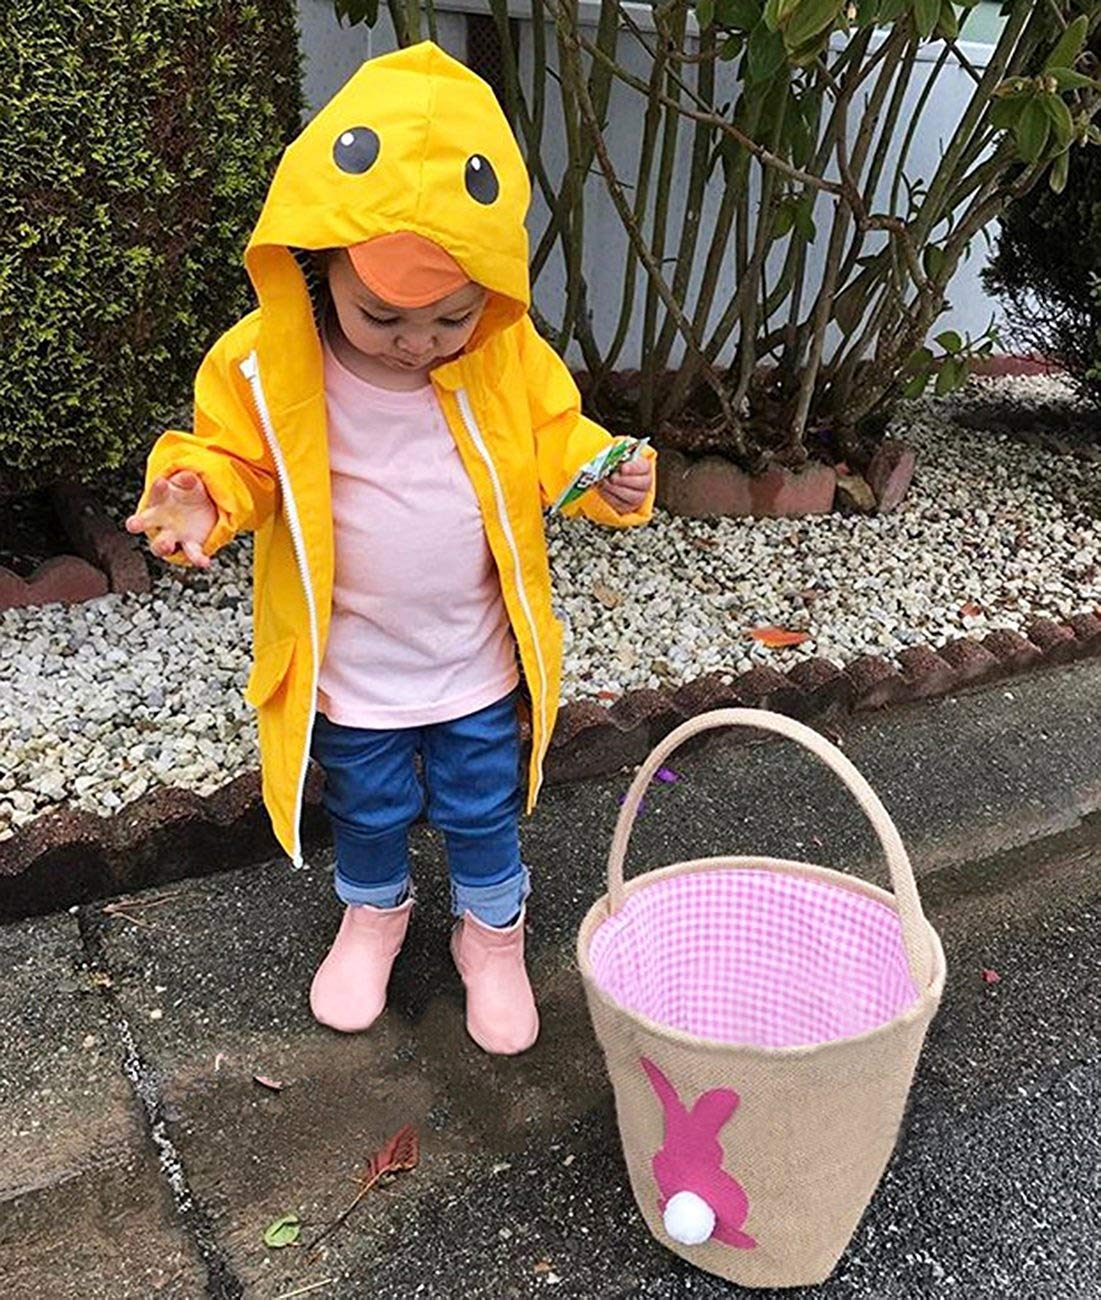 YOUNGER TREE Toddler Baby Boy Girl Duck Raincoat Cute Cartoon Hoodie Zipper Coat Outfit (Yellow, 80) by YOUNGER TREE (Image #3)